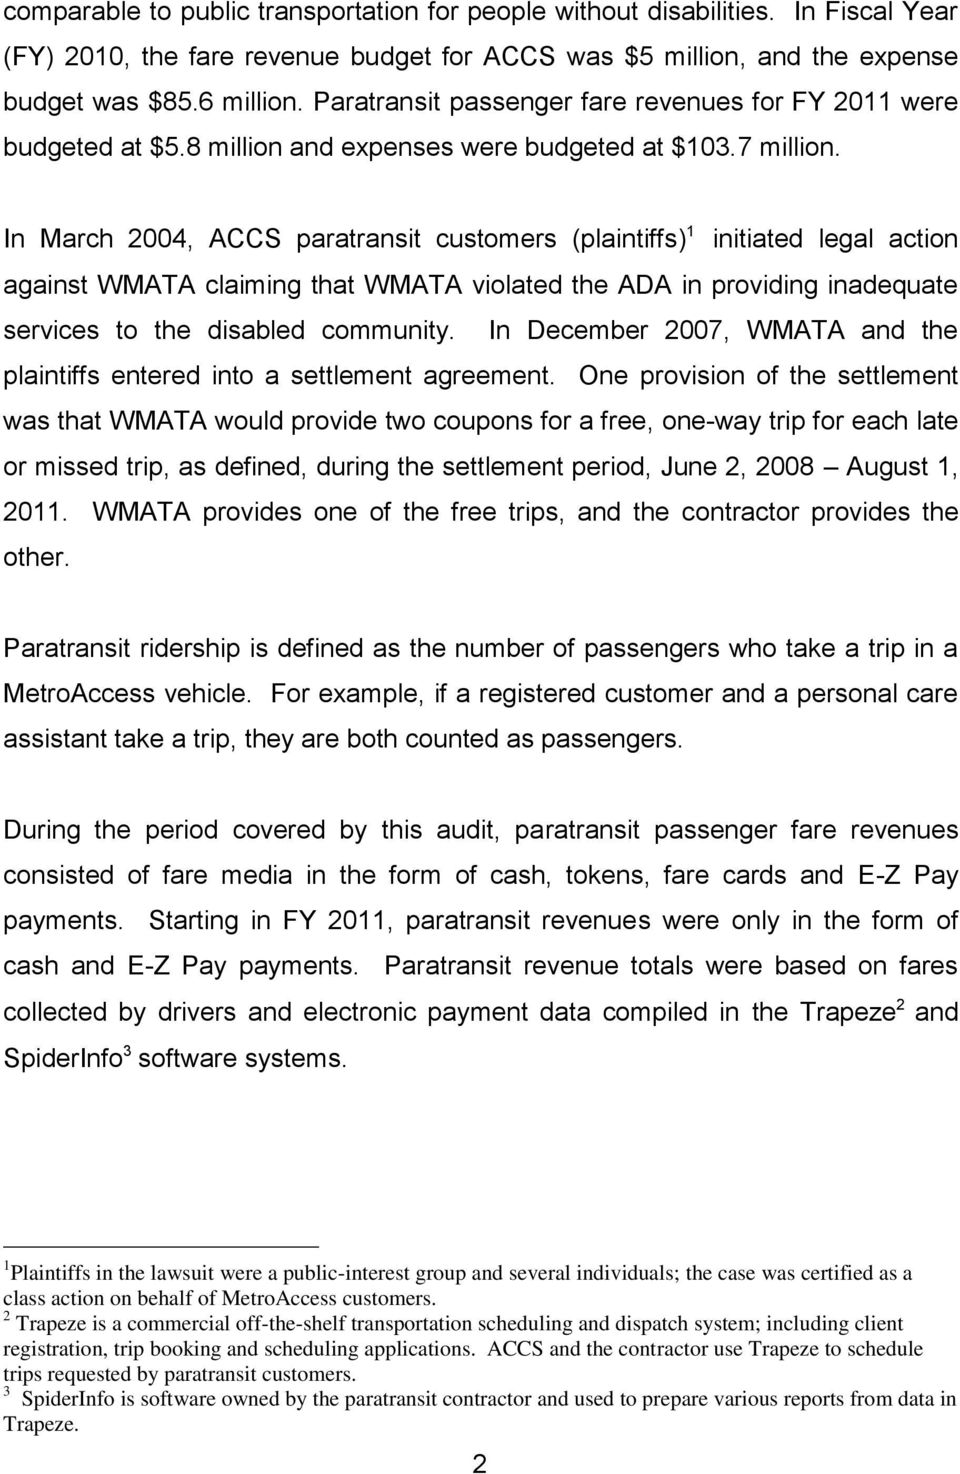 In March 2004, ACCS paratransit customers (plaintiffs) 1 initiated legal action against WMATA claiming that WMATA violated the ADA in providing inadequate services to the disabled community.